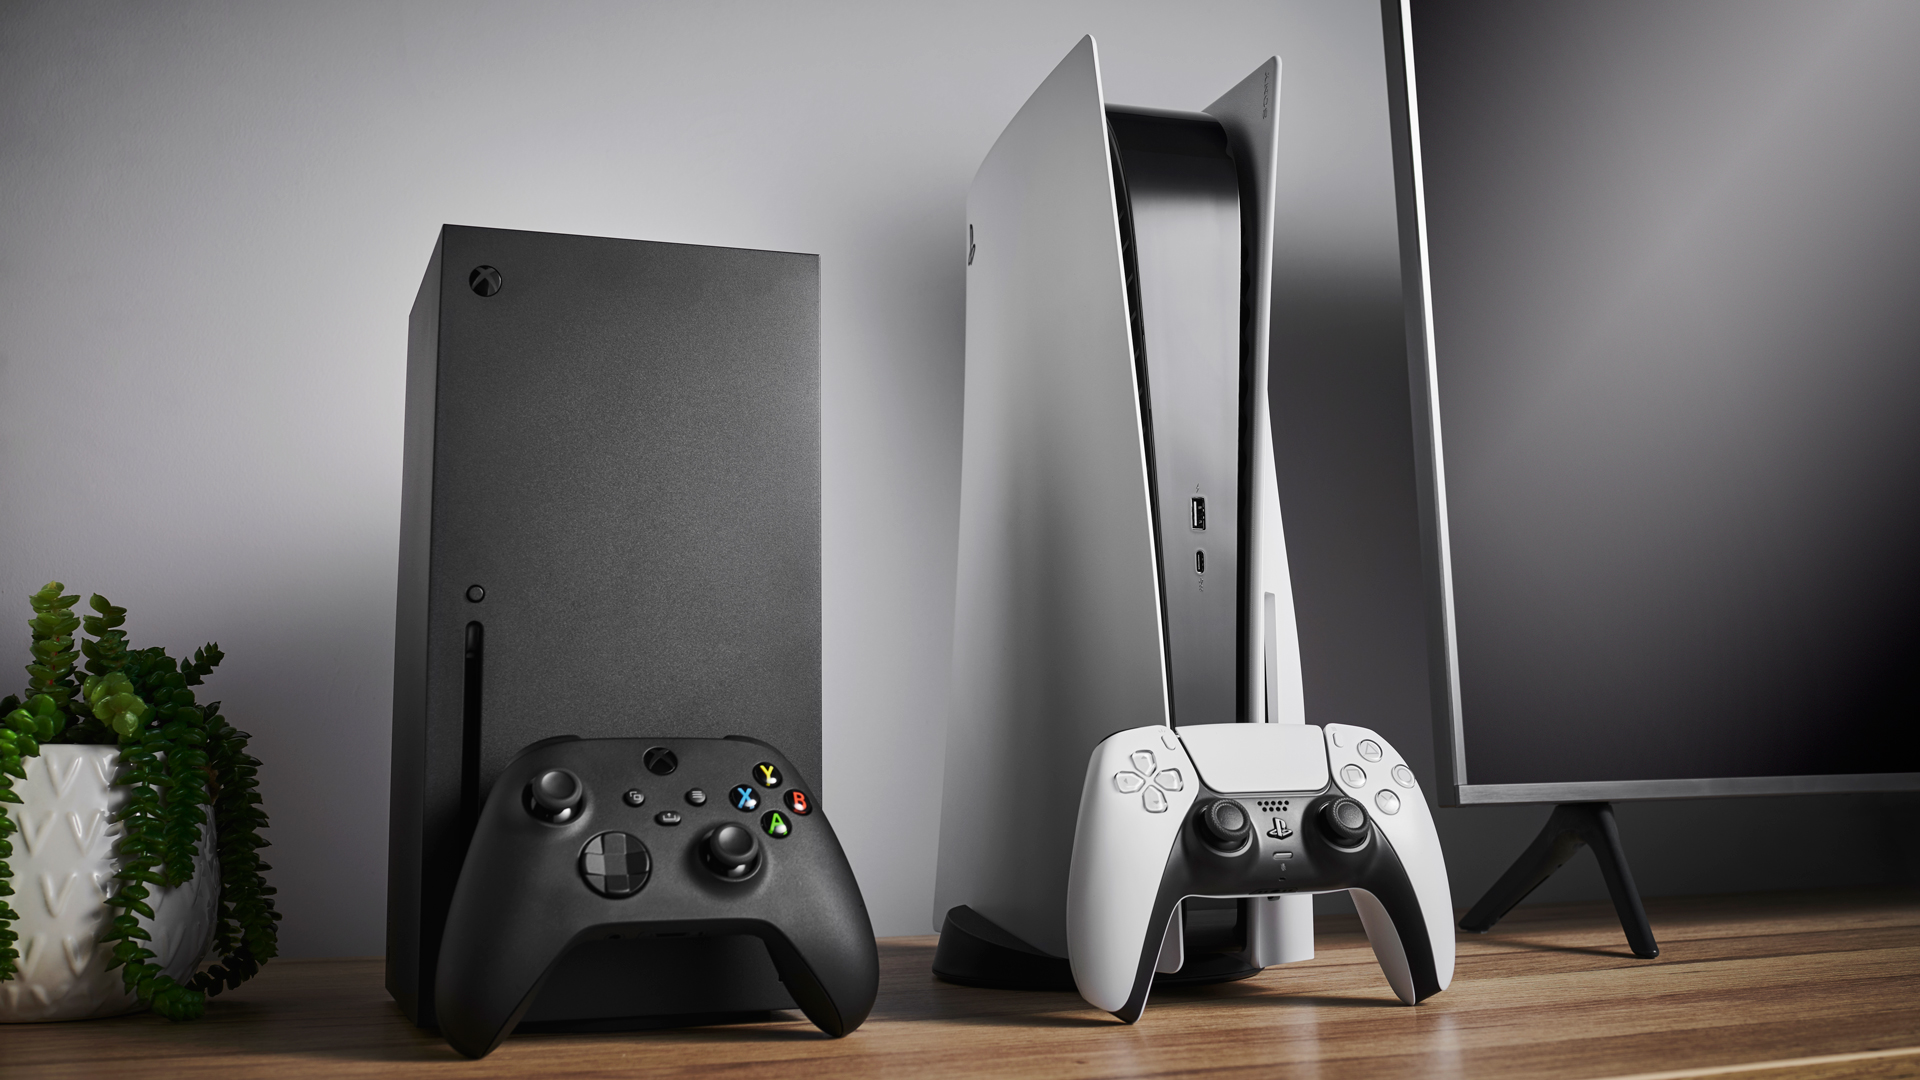 What are the latest tech advances in the PS5 and Xbox Series?